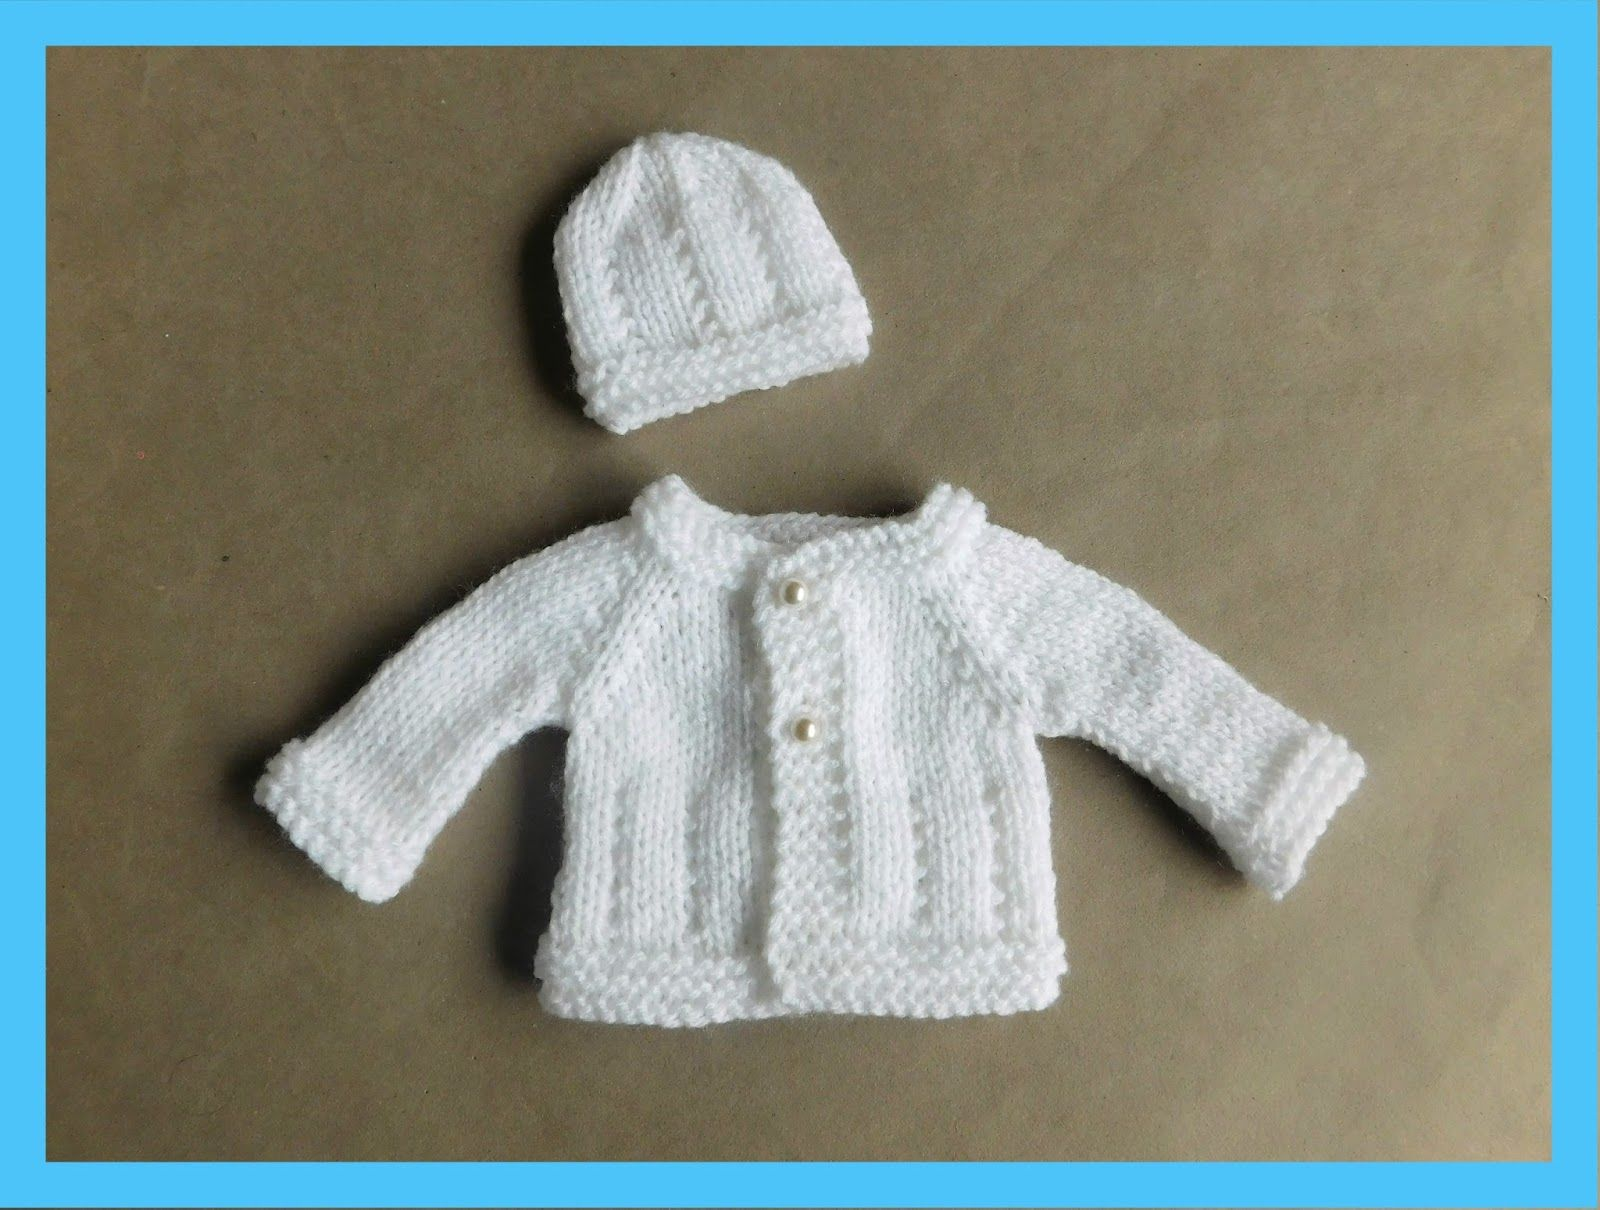 Mariannas lazy daisy days knitting and crochet beauty jack jill baby jacket extra small chest short or long sleeves jack jill baby jacket extra small chest bankloansurffo Images